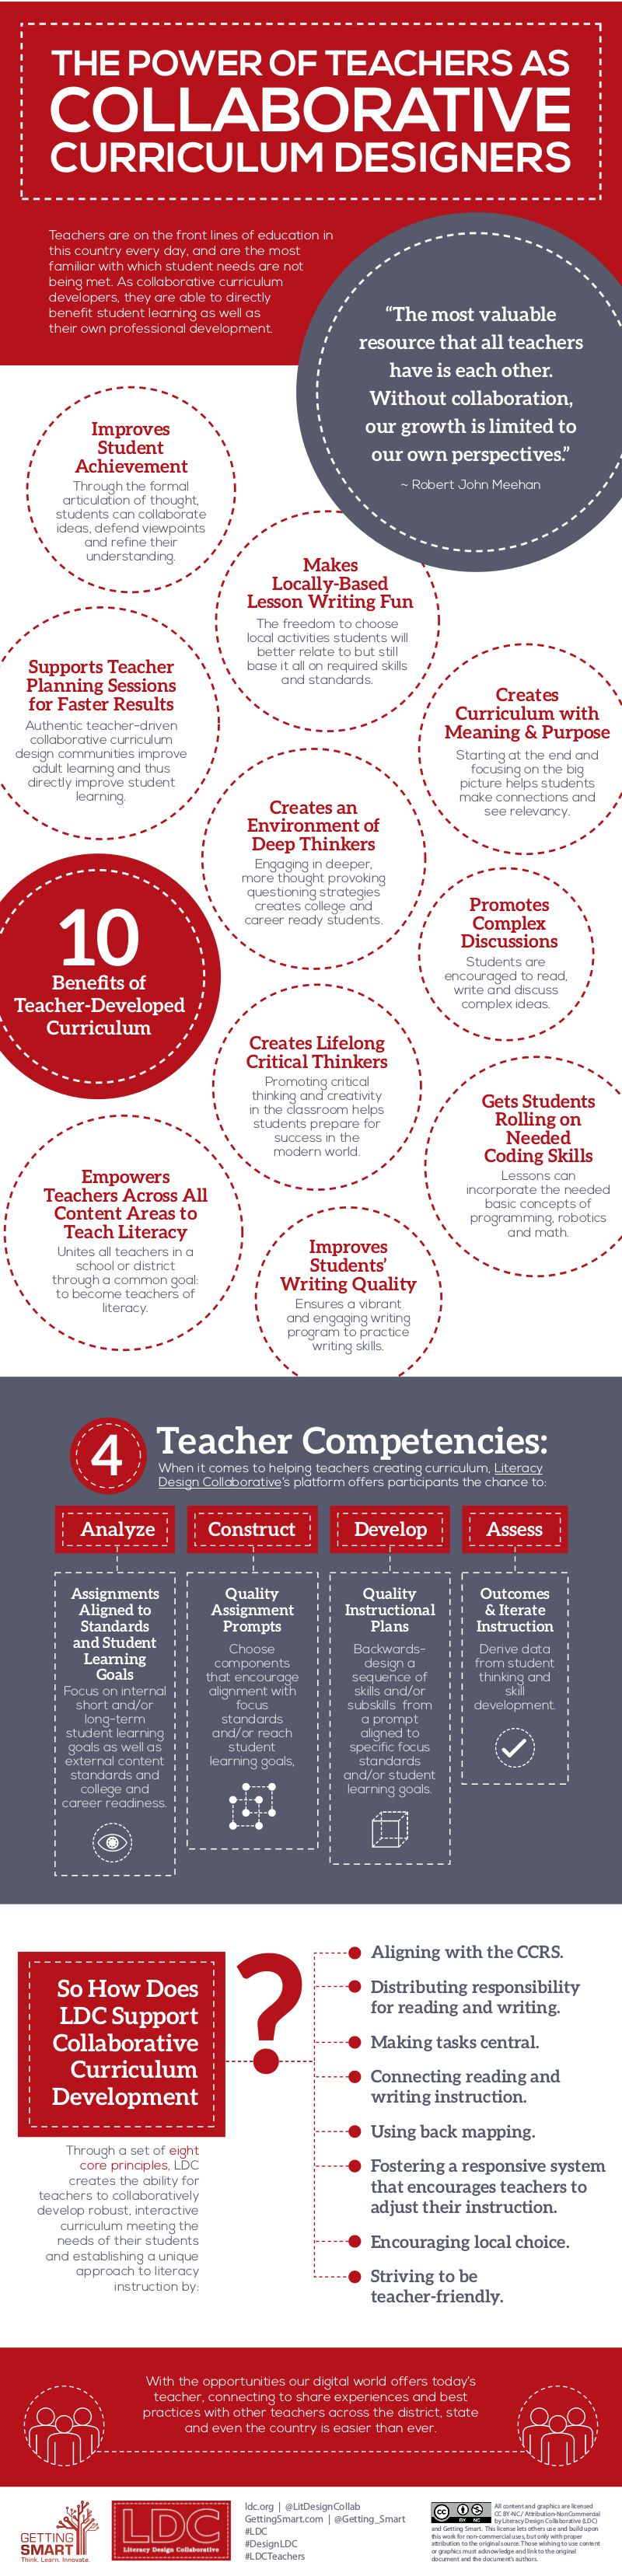 Teachers are on the front lines of education every day, and are the most familiar with which student needs are not being met and preventing them from being successful.